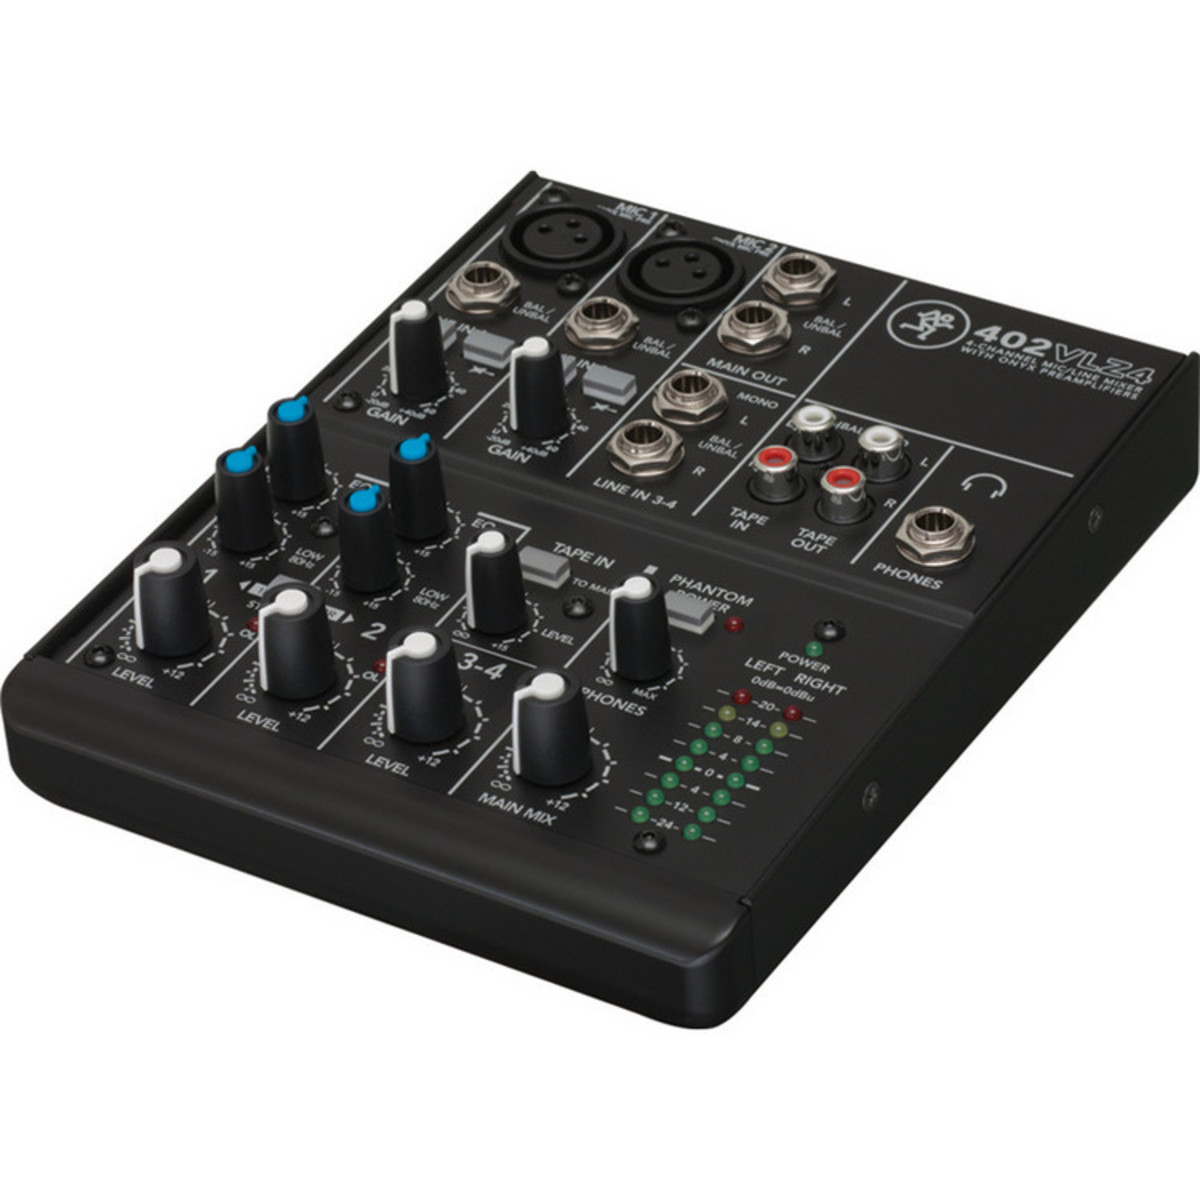 mackie 402 vlz4 4 channel analogue compact mixer box opened at gear4music. Black Bedroom Furniture Sets. Home Design Ideas